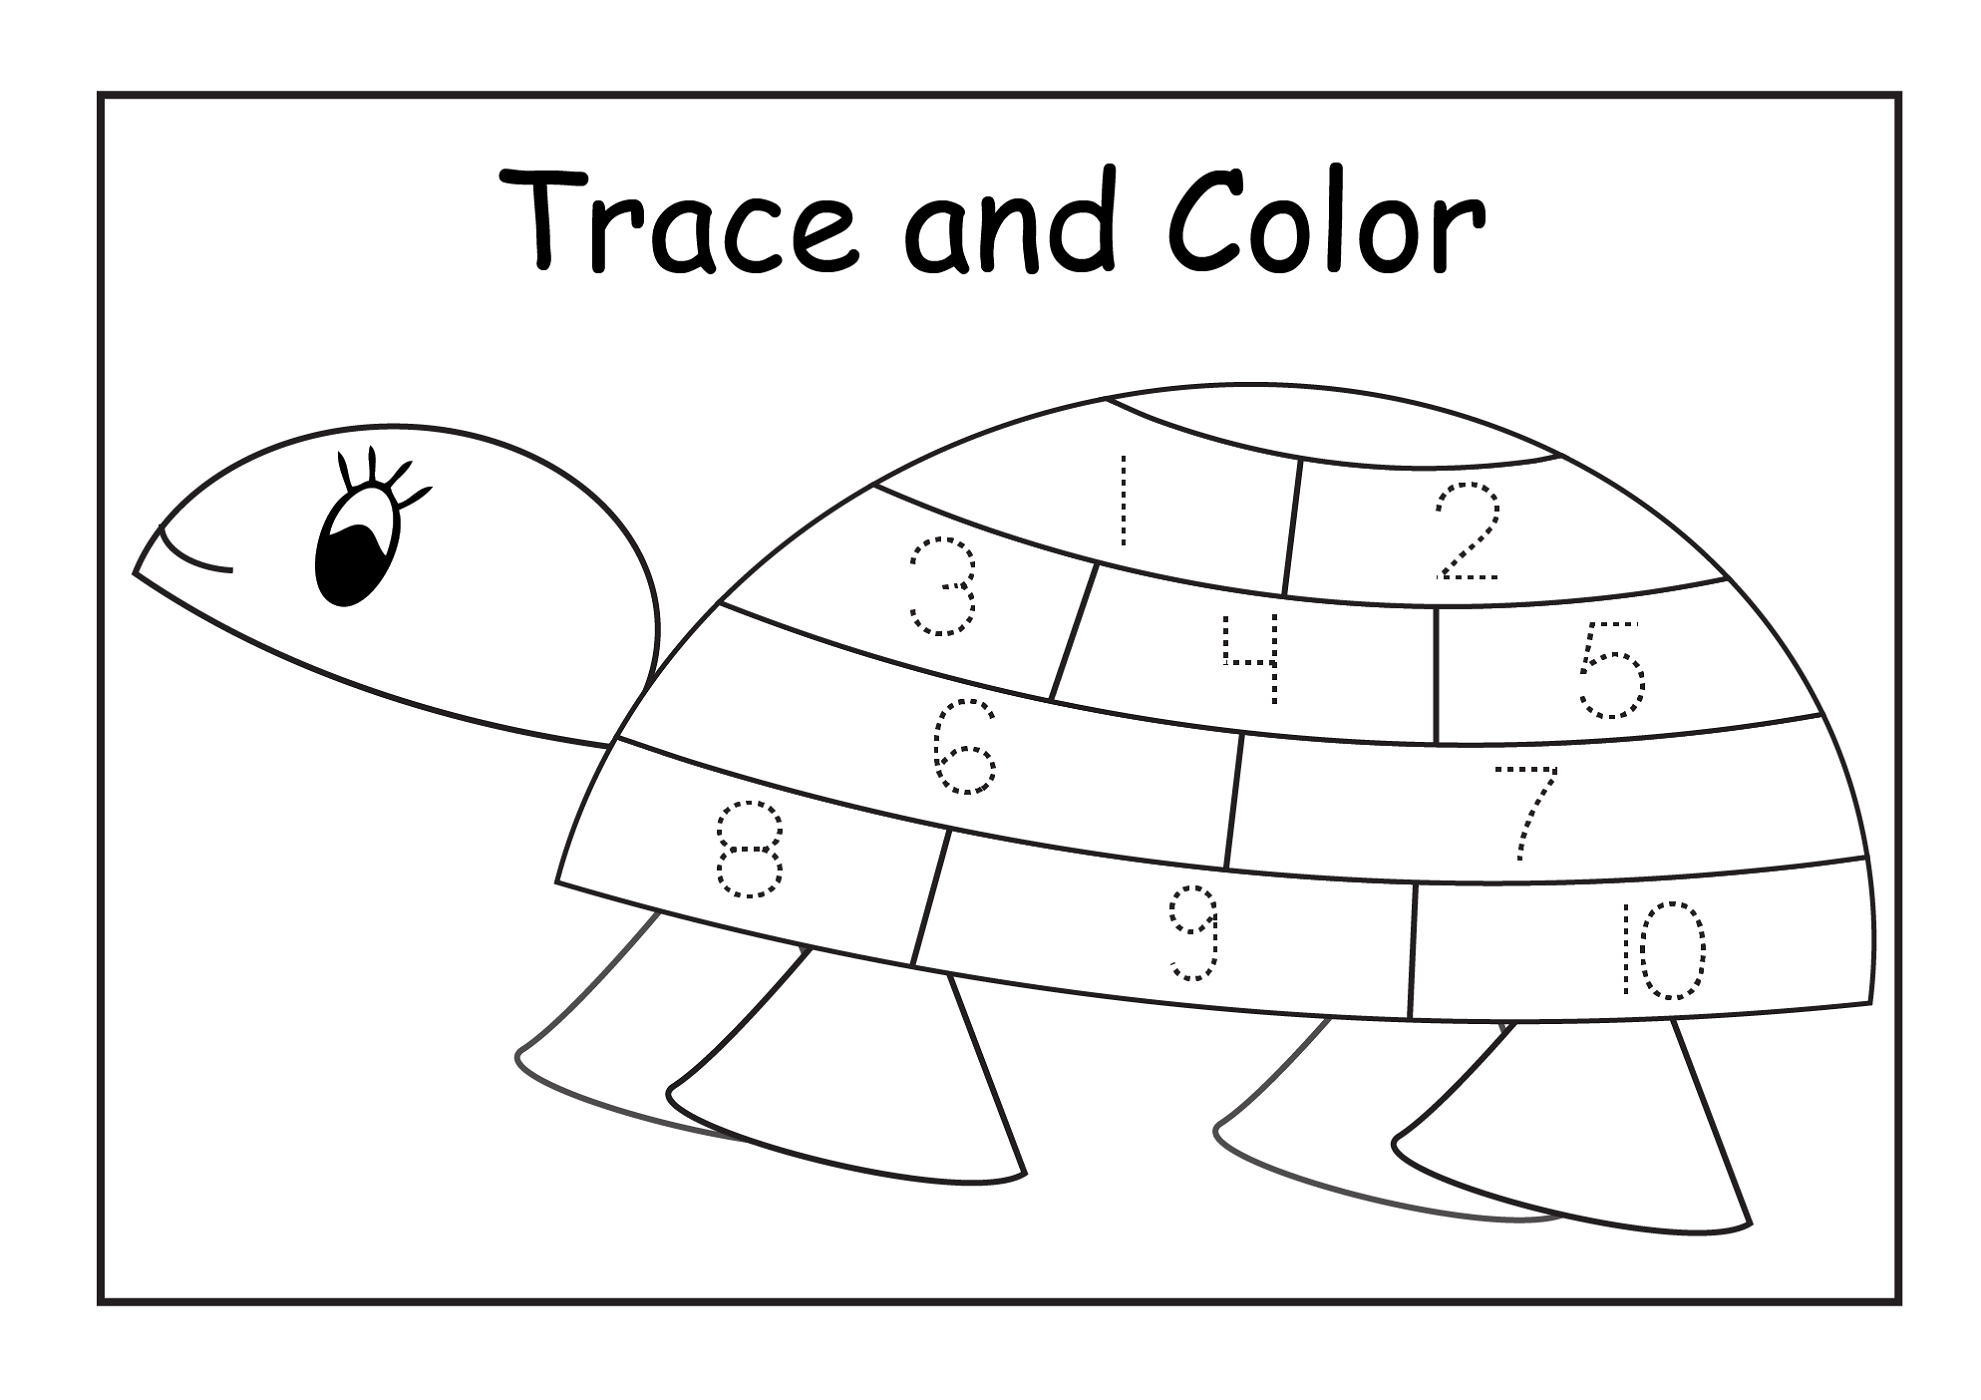 tracing coloring pages - photo#25